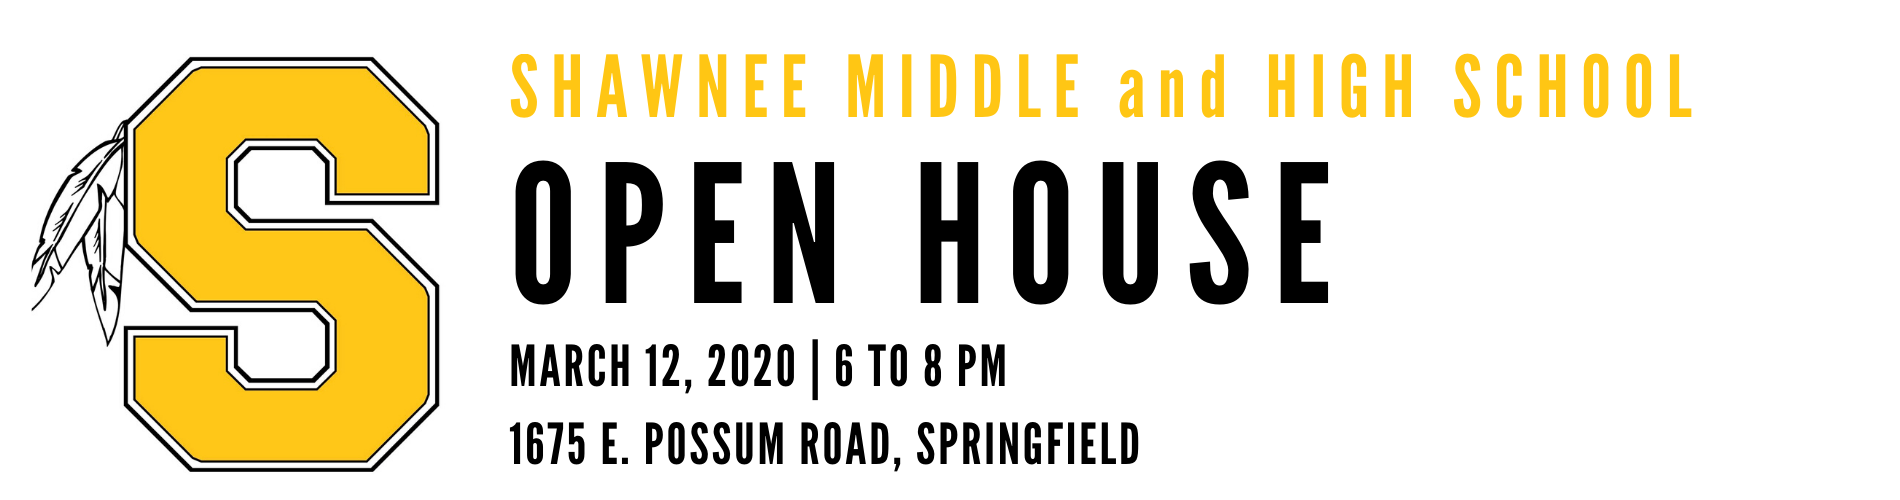 Shawnee Middle and High School Renovation Open House, March 12, 2020 at 6 to 8 p.m.